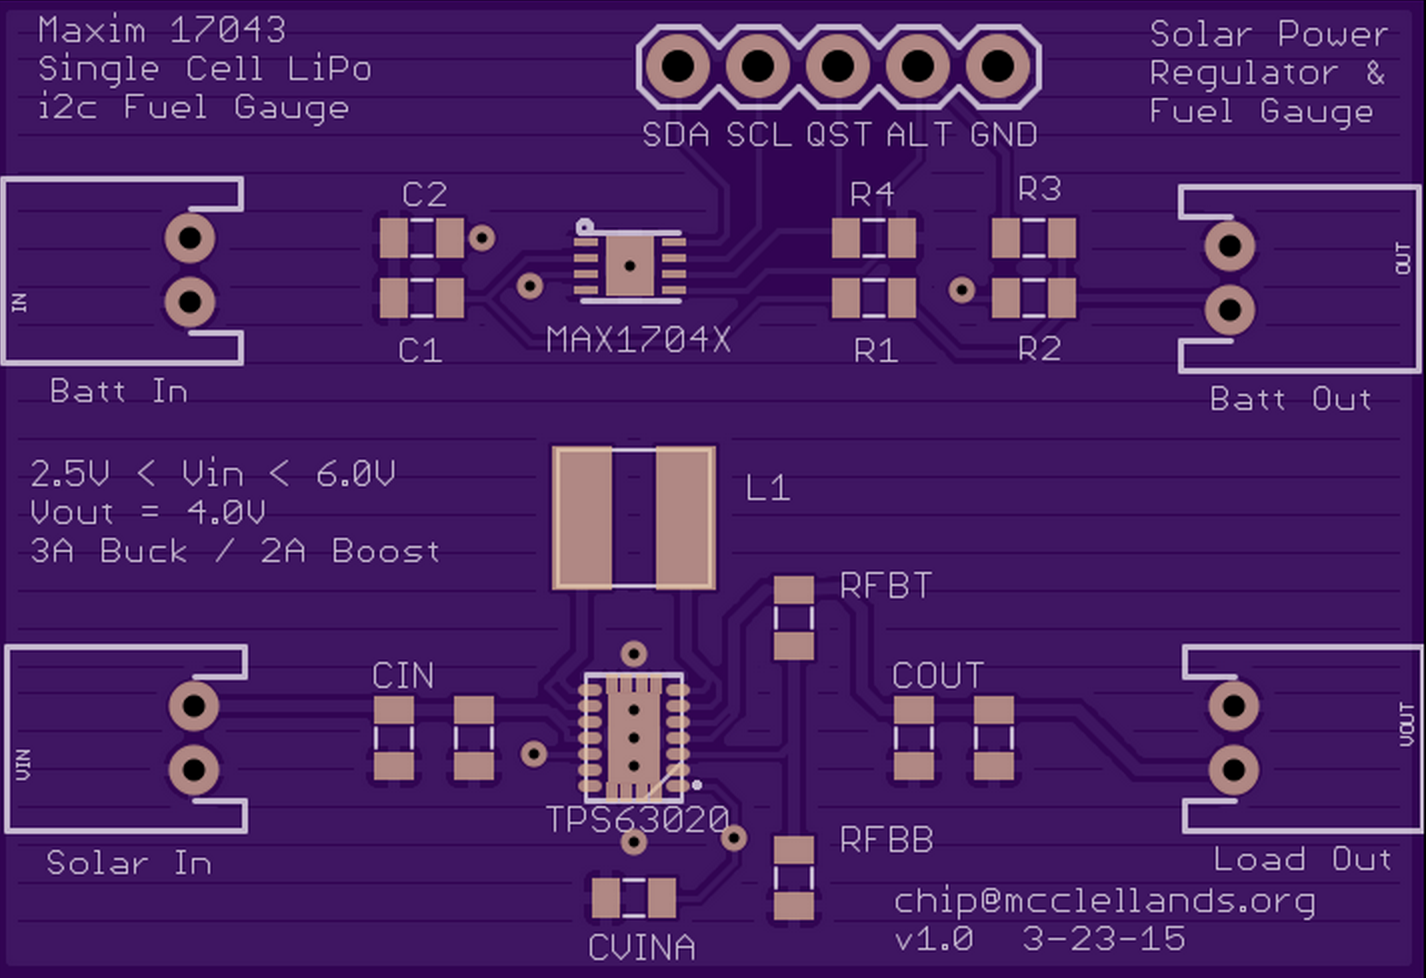 Solar Power Manager With Battery Fuel Gauge Gas Schematic Board Layout